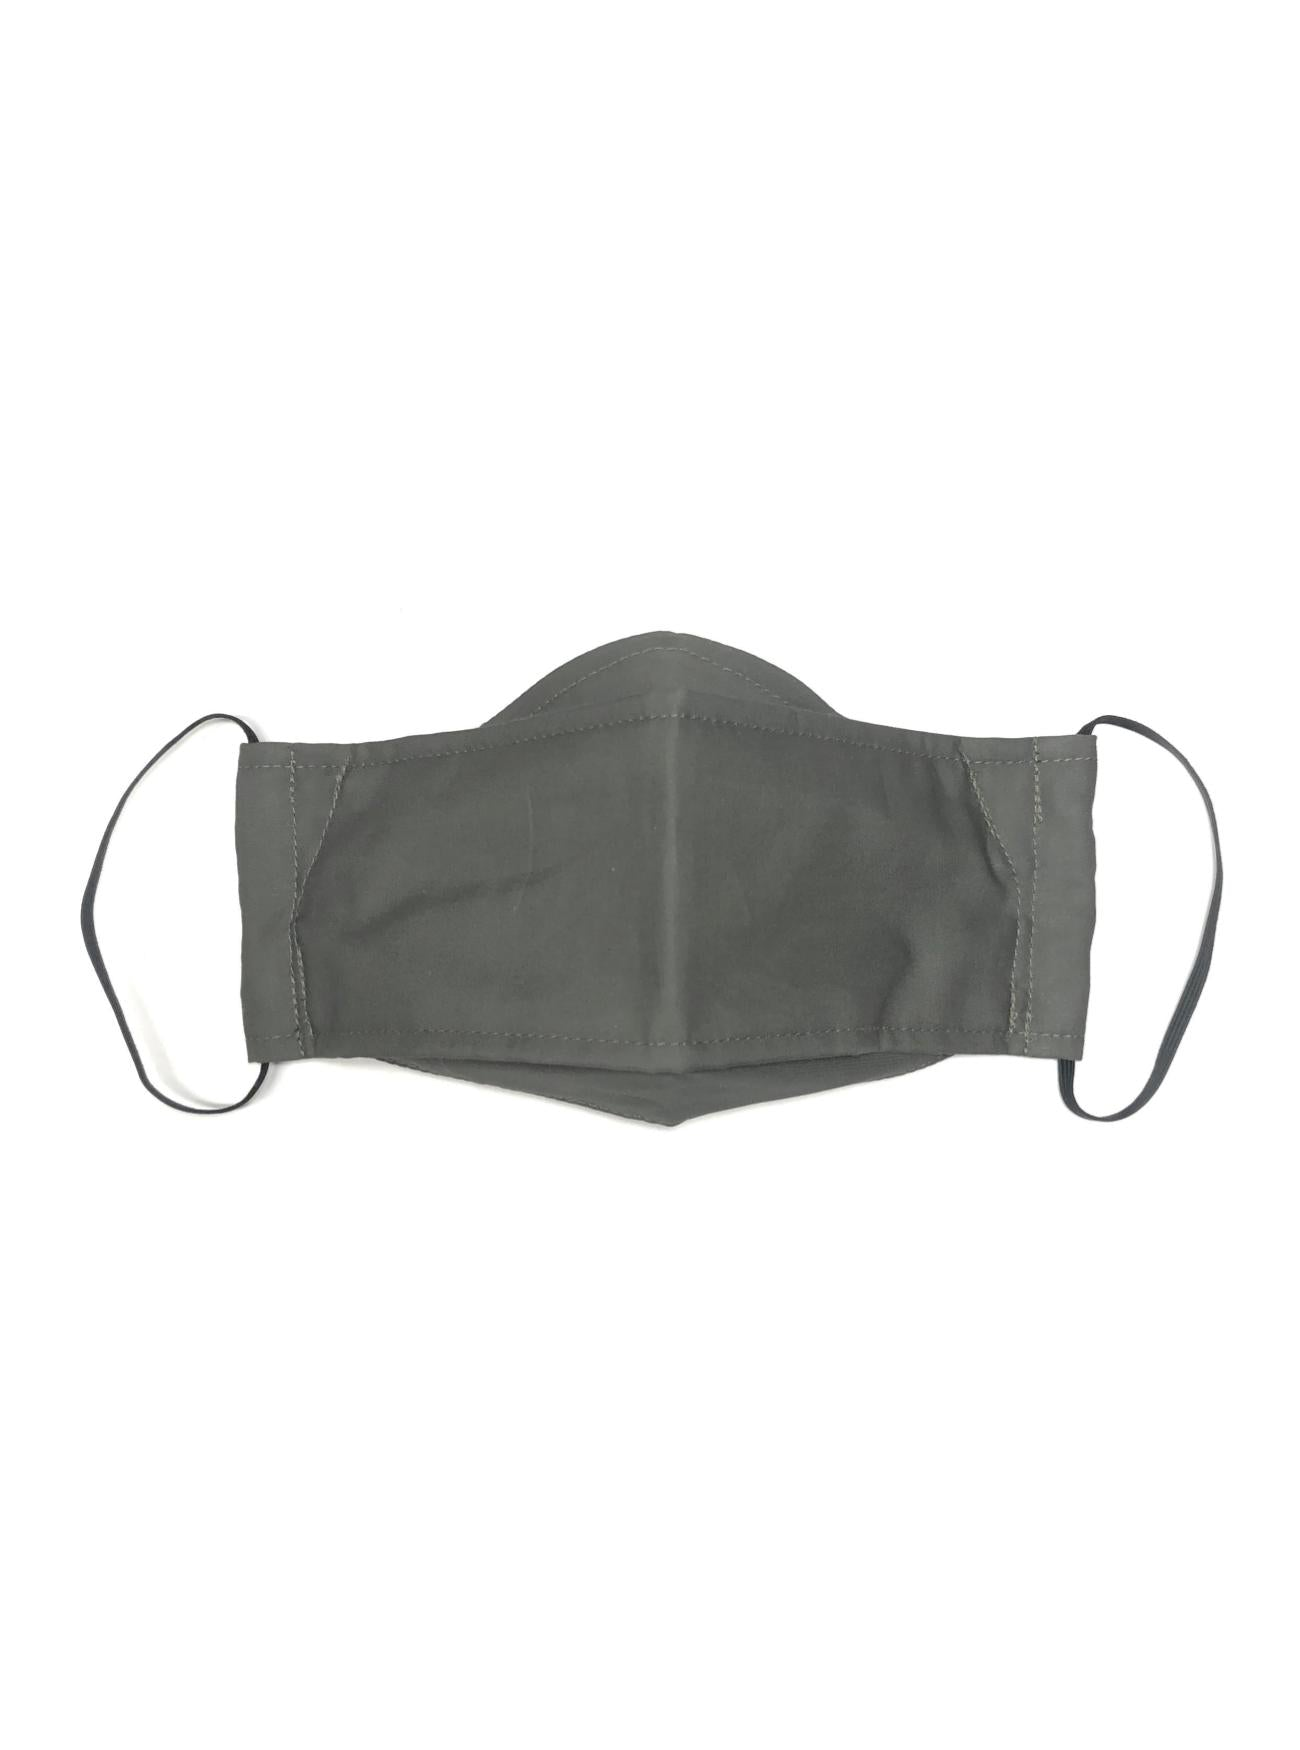 Stone Grey, Reusable Face Mask [2-layers]